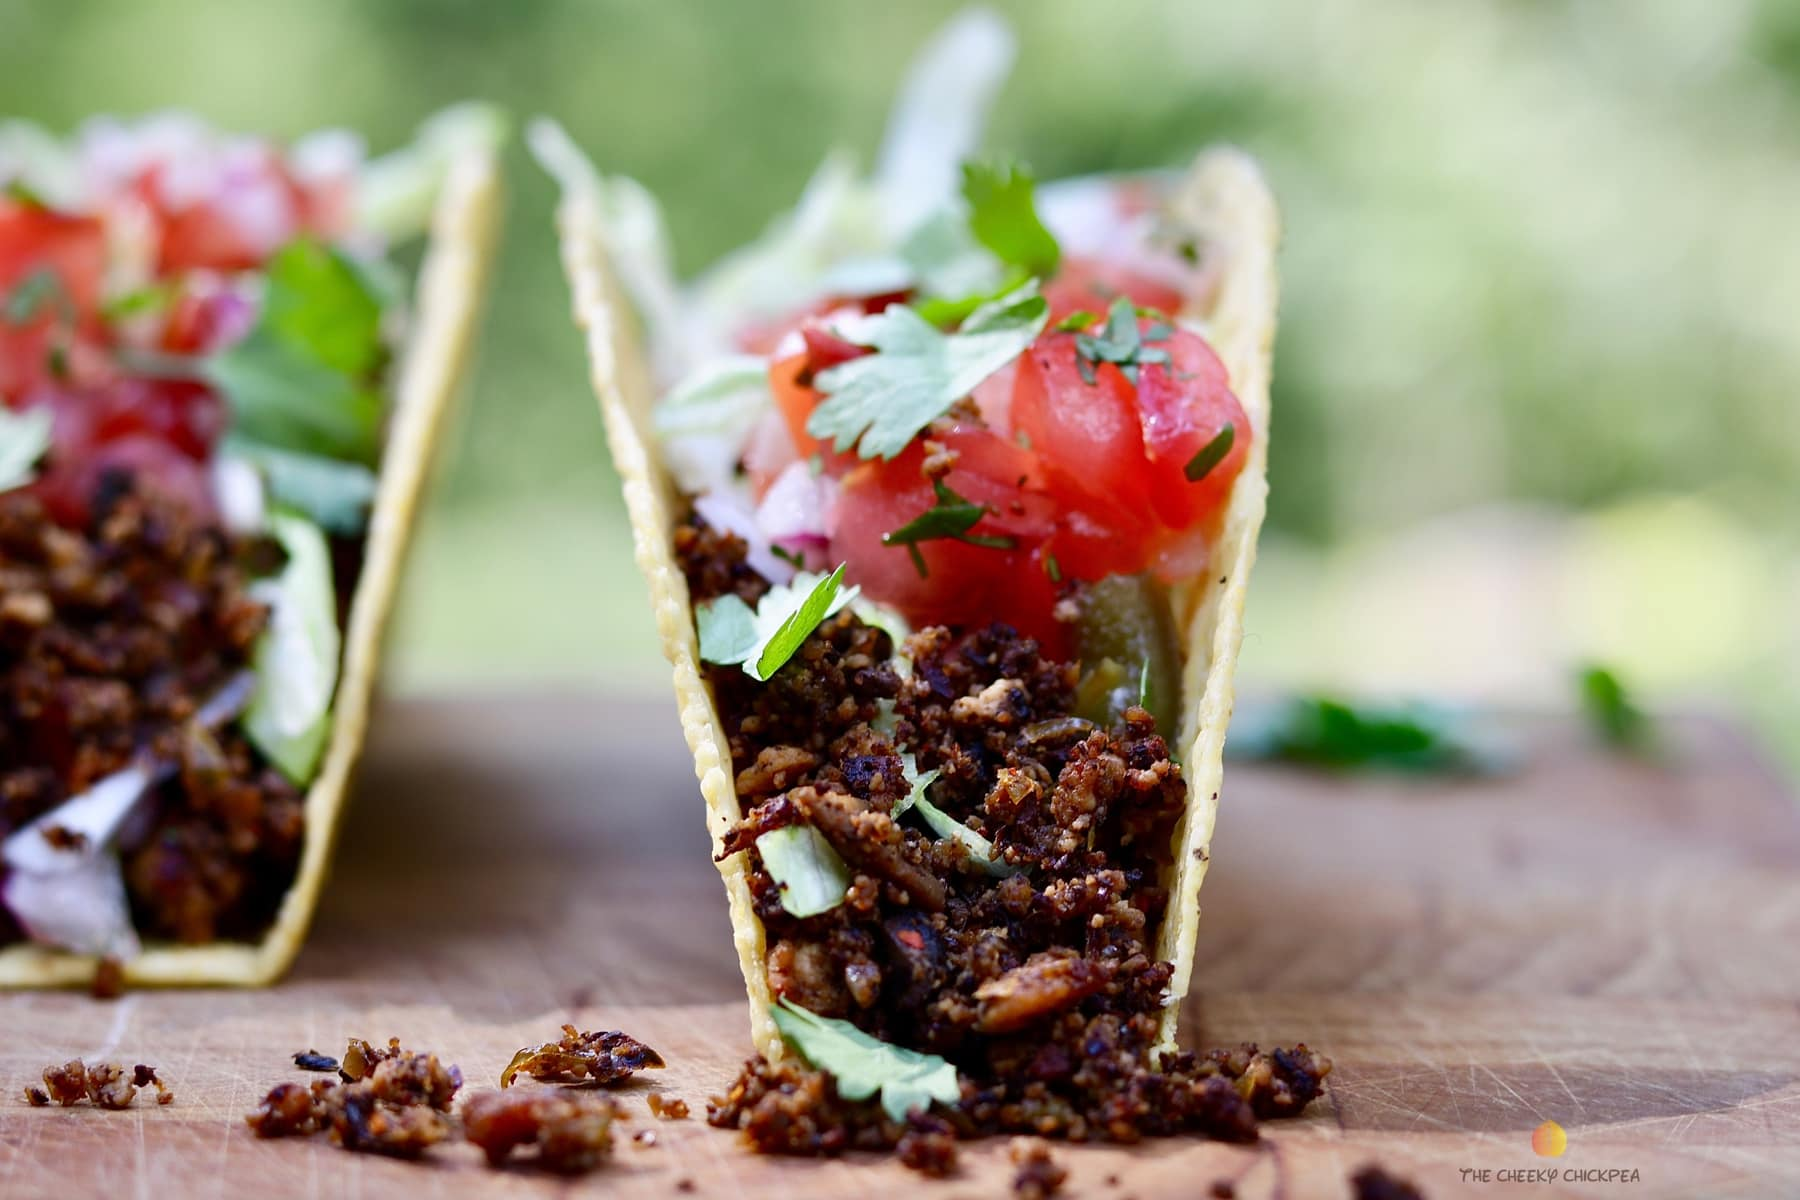 Tasty Tex Mex Vegan Taco Meat Recipe on a wooden cutting board